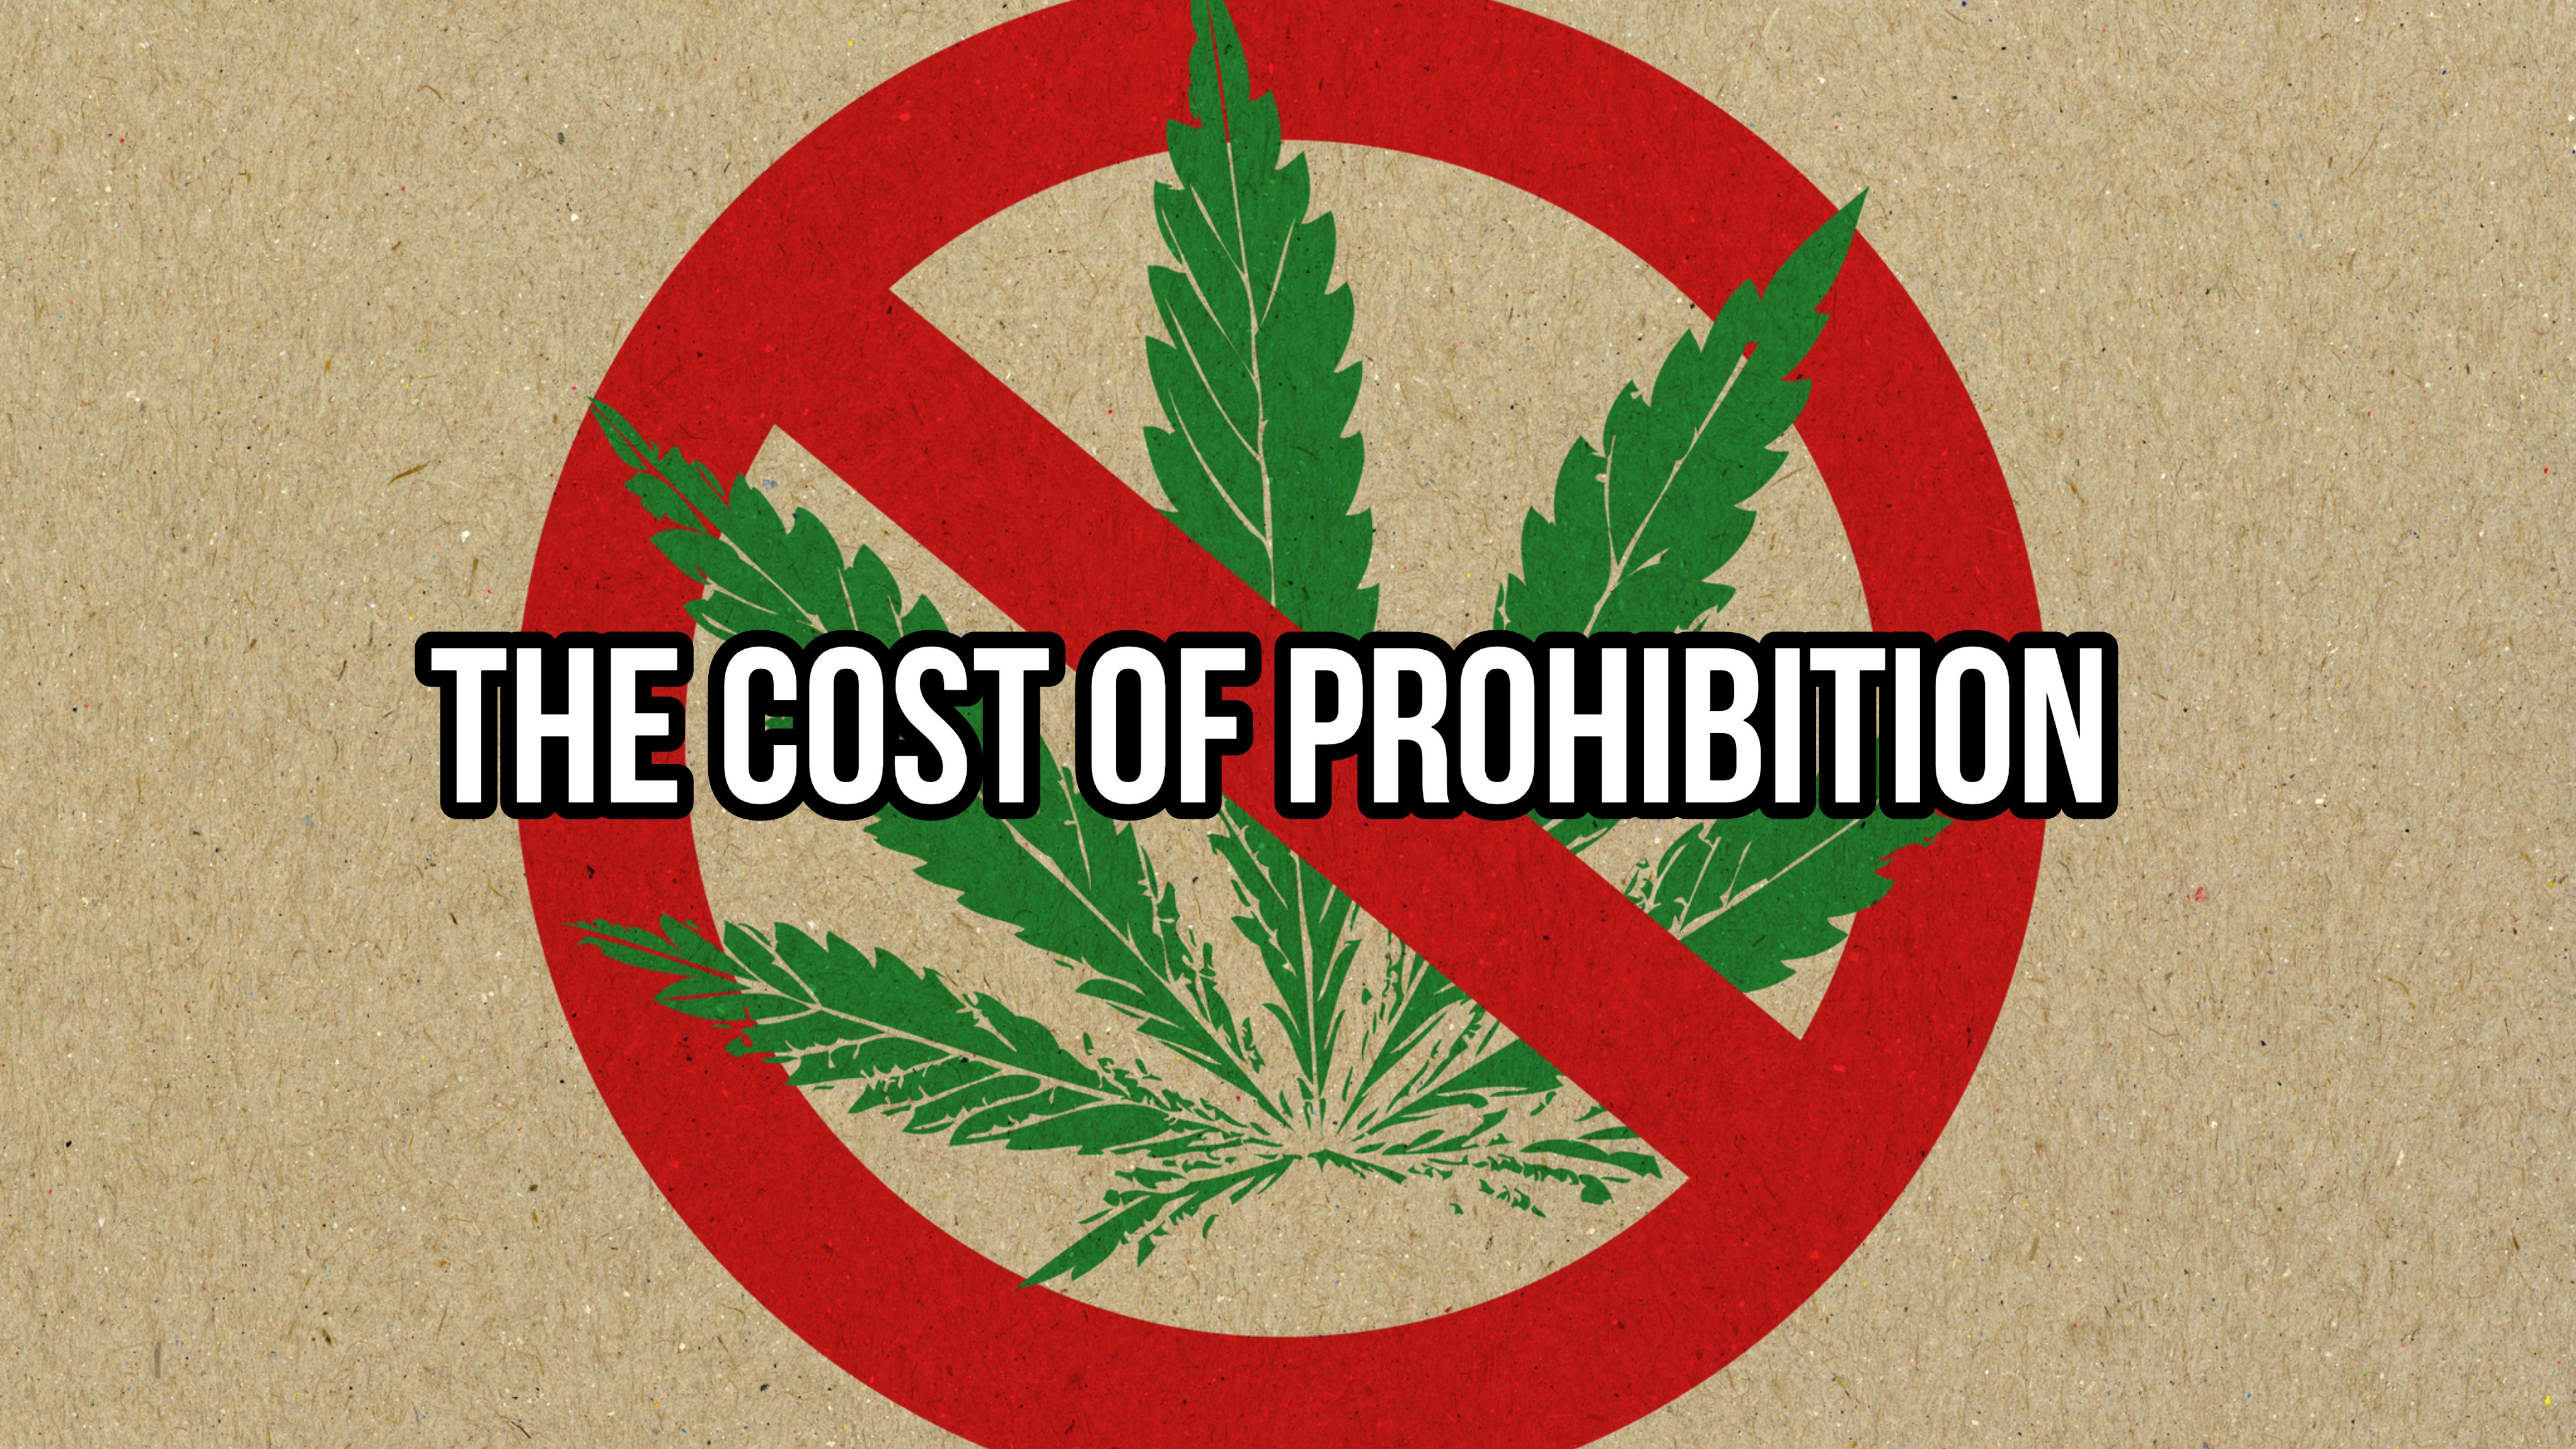 cost of prohibition